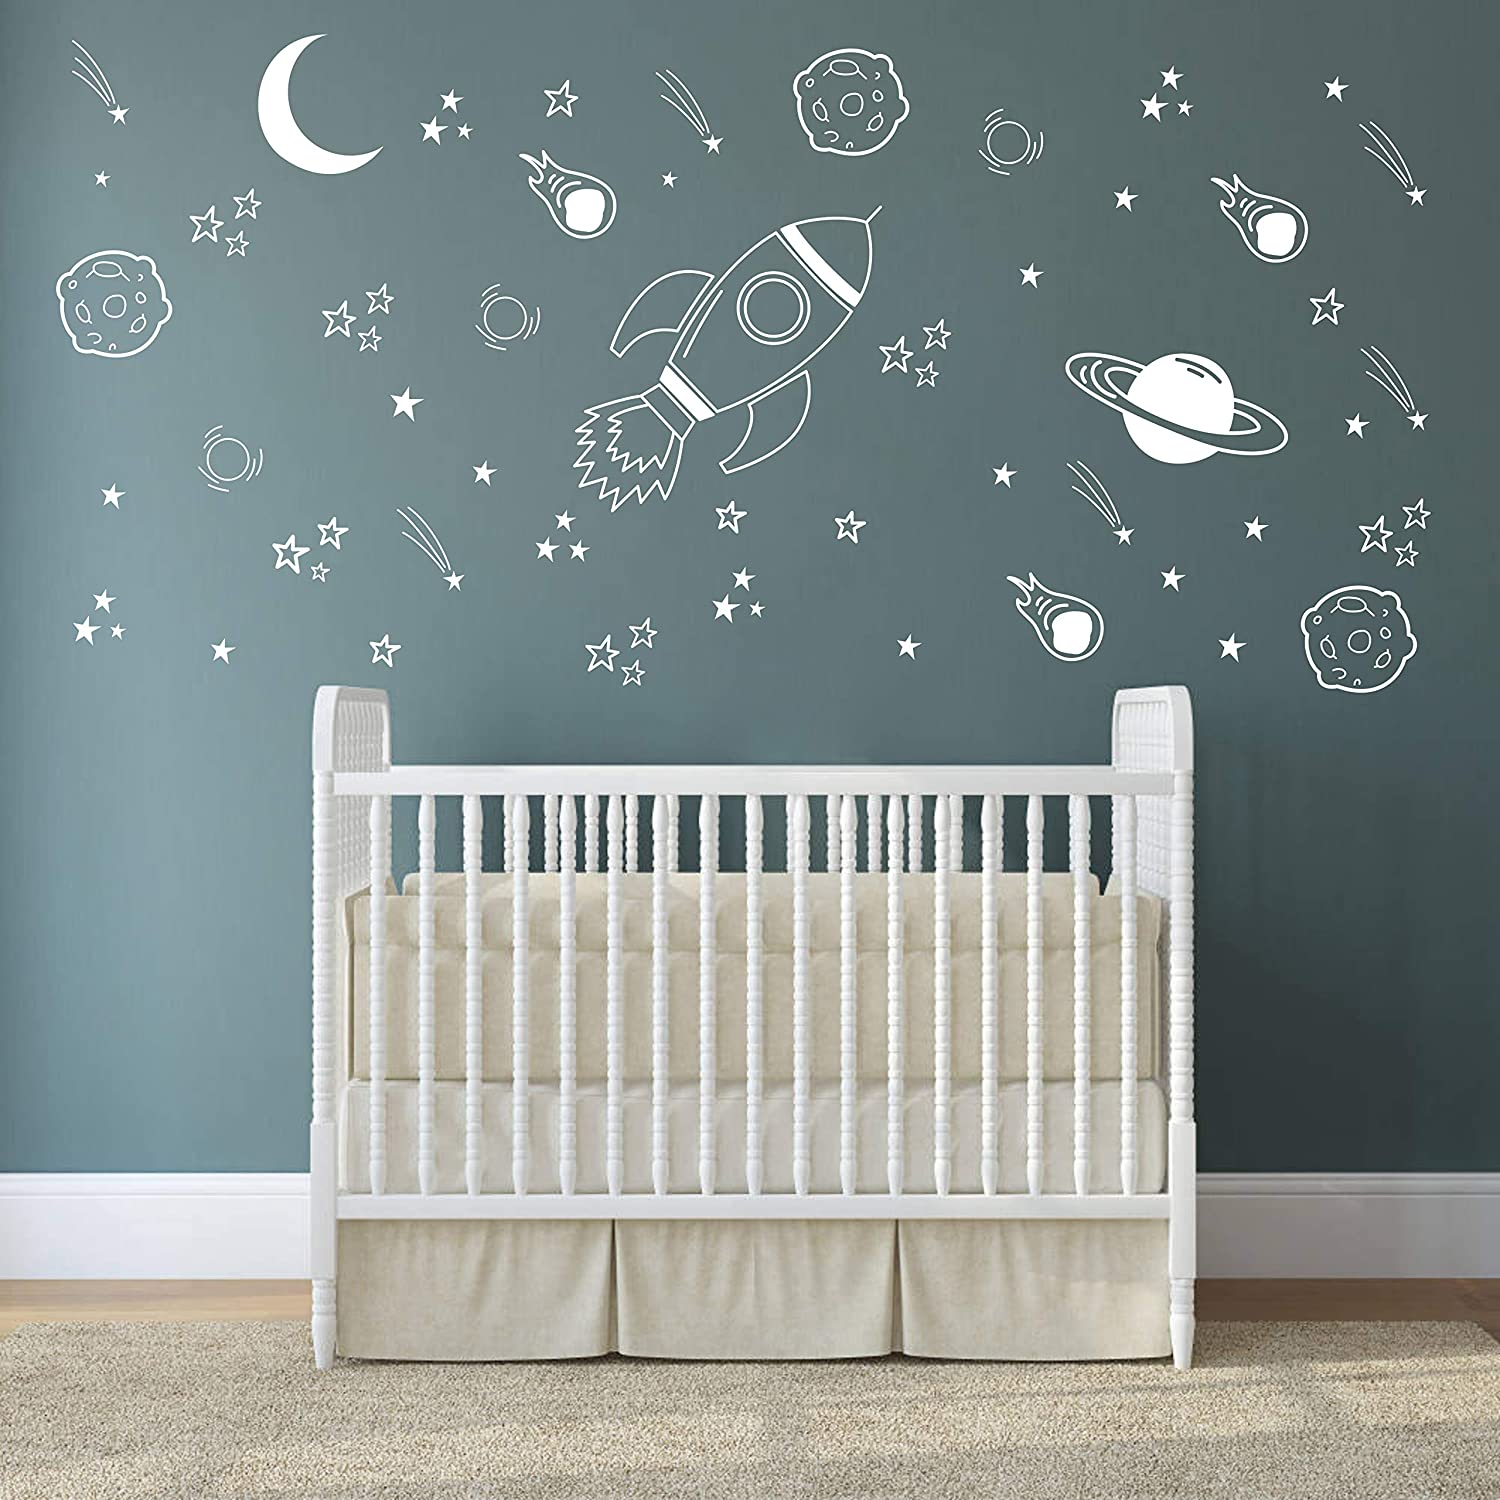 Space Wall Decal Nursery, Outer Space Decor, Rocket Decal, Boy Room Decor,  Space Ship Decal, Space Themed Room, Planets Wall Decal for Baby Boys